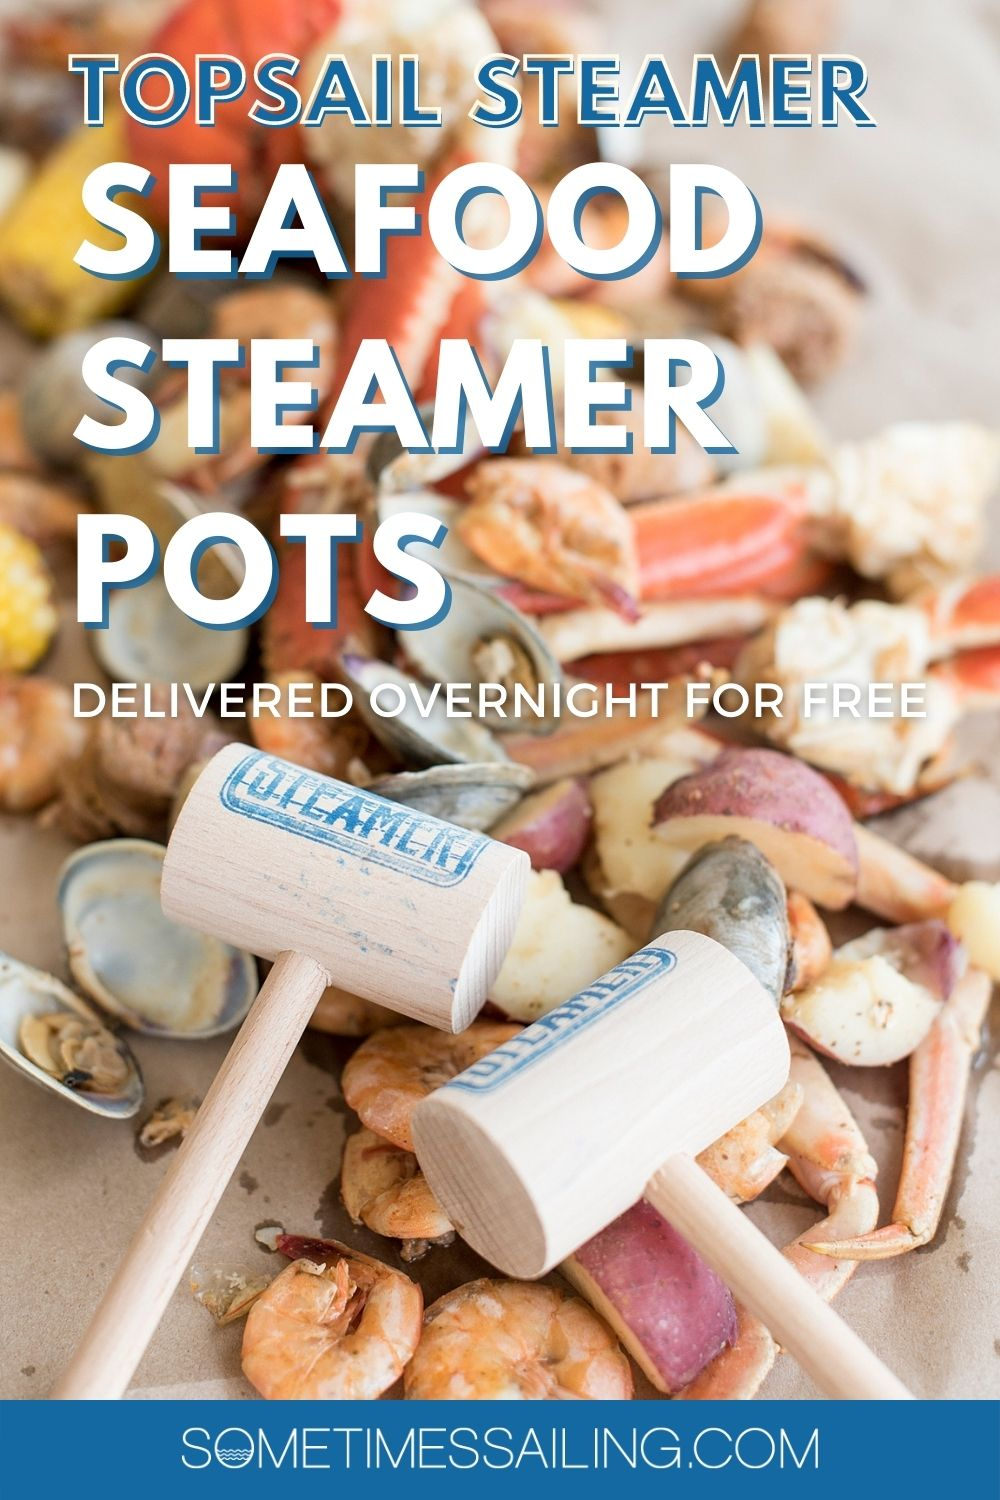 Pinterest image for Topsail Steamer with a seafood photo behind the text.